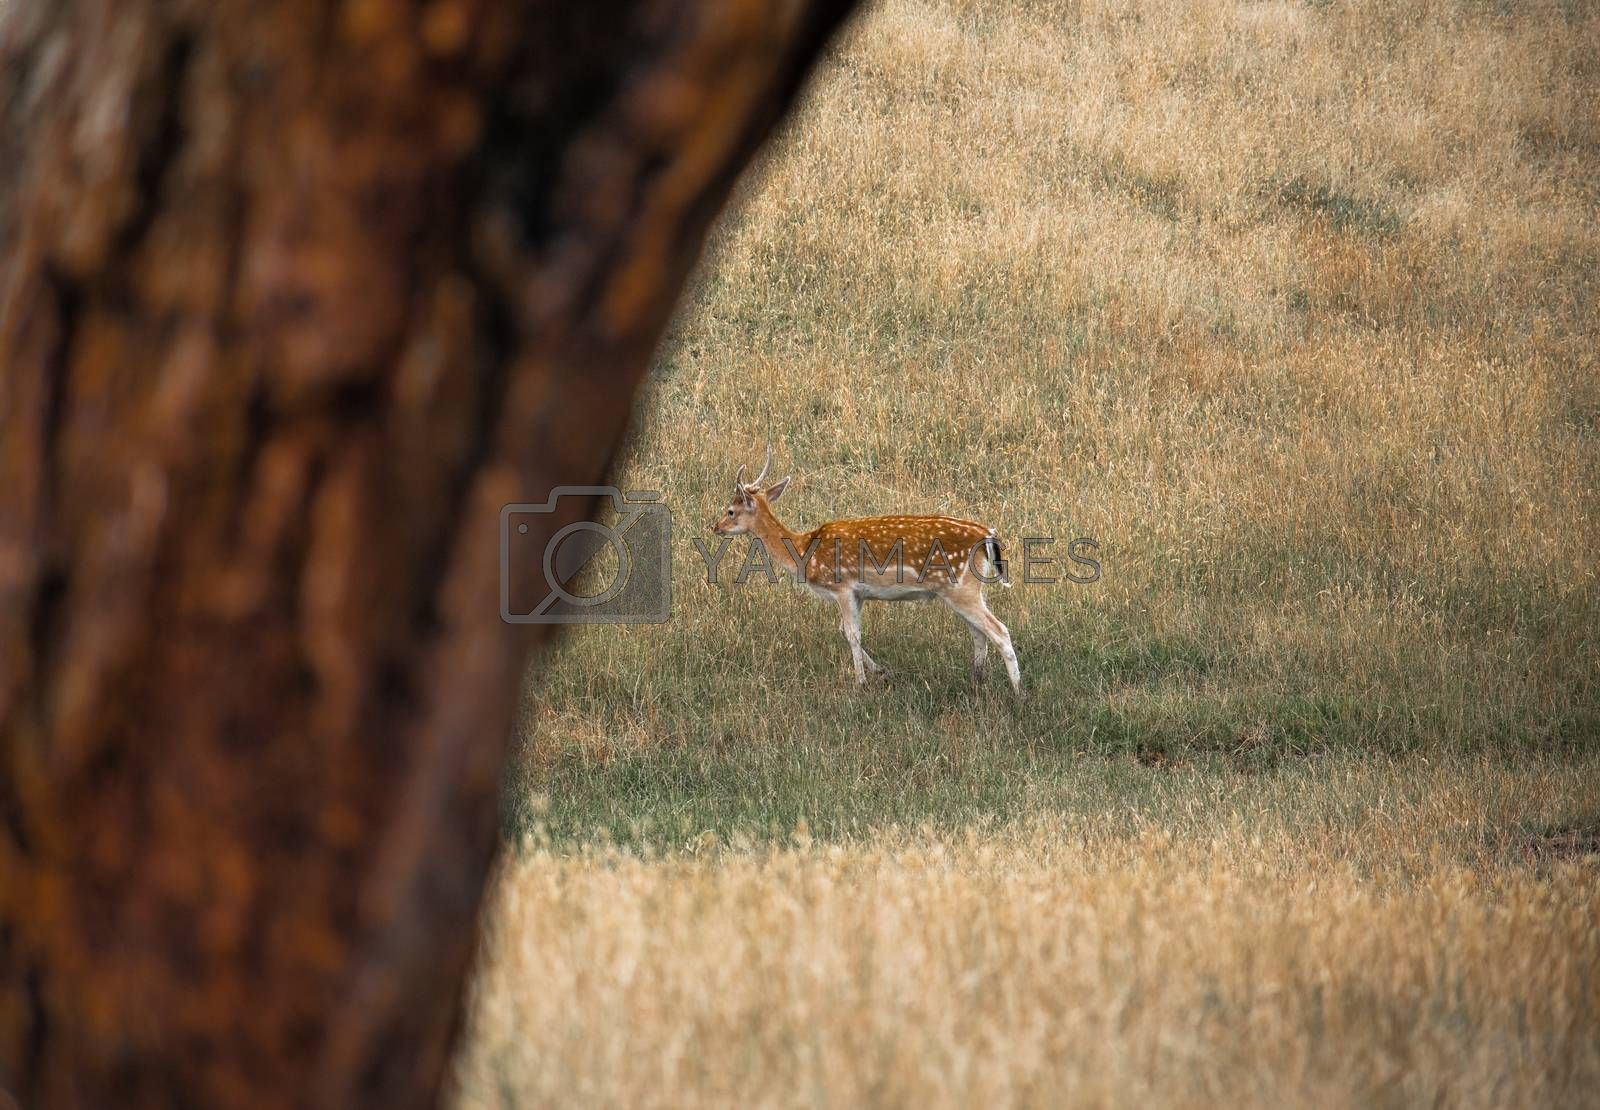 Antelope in grass by benwehrman